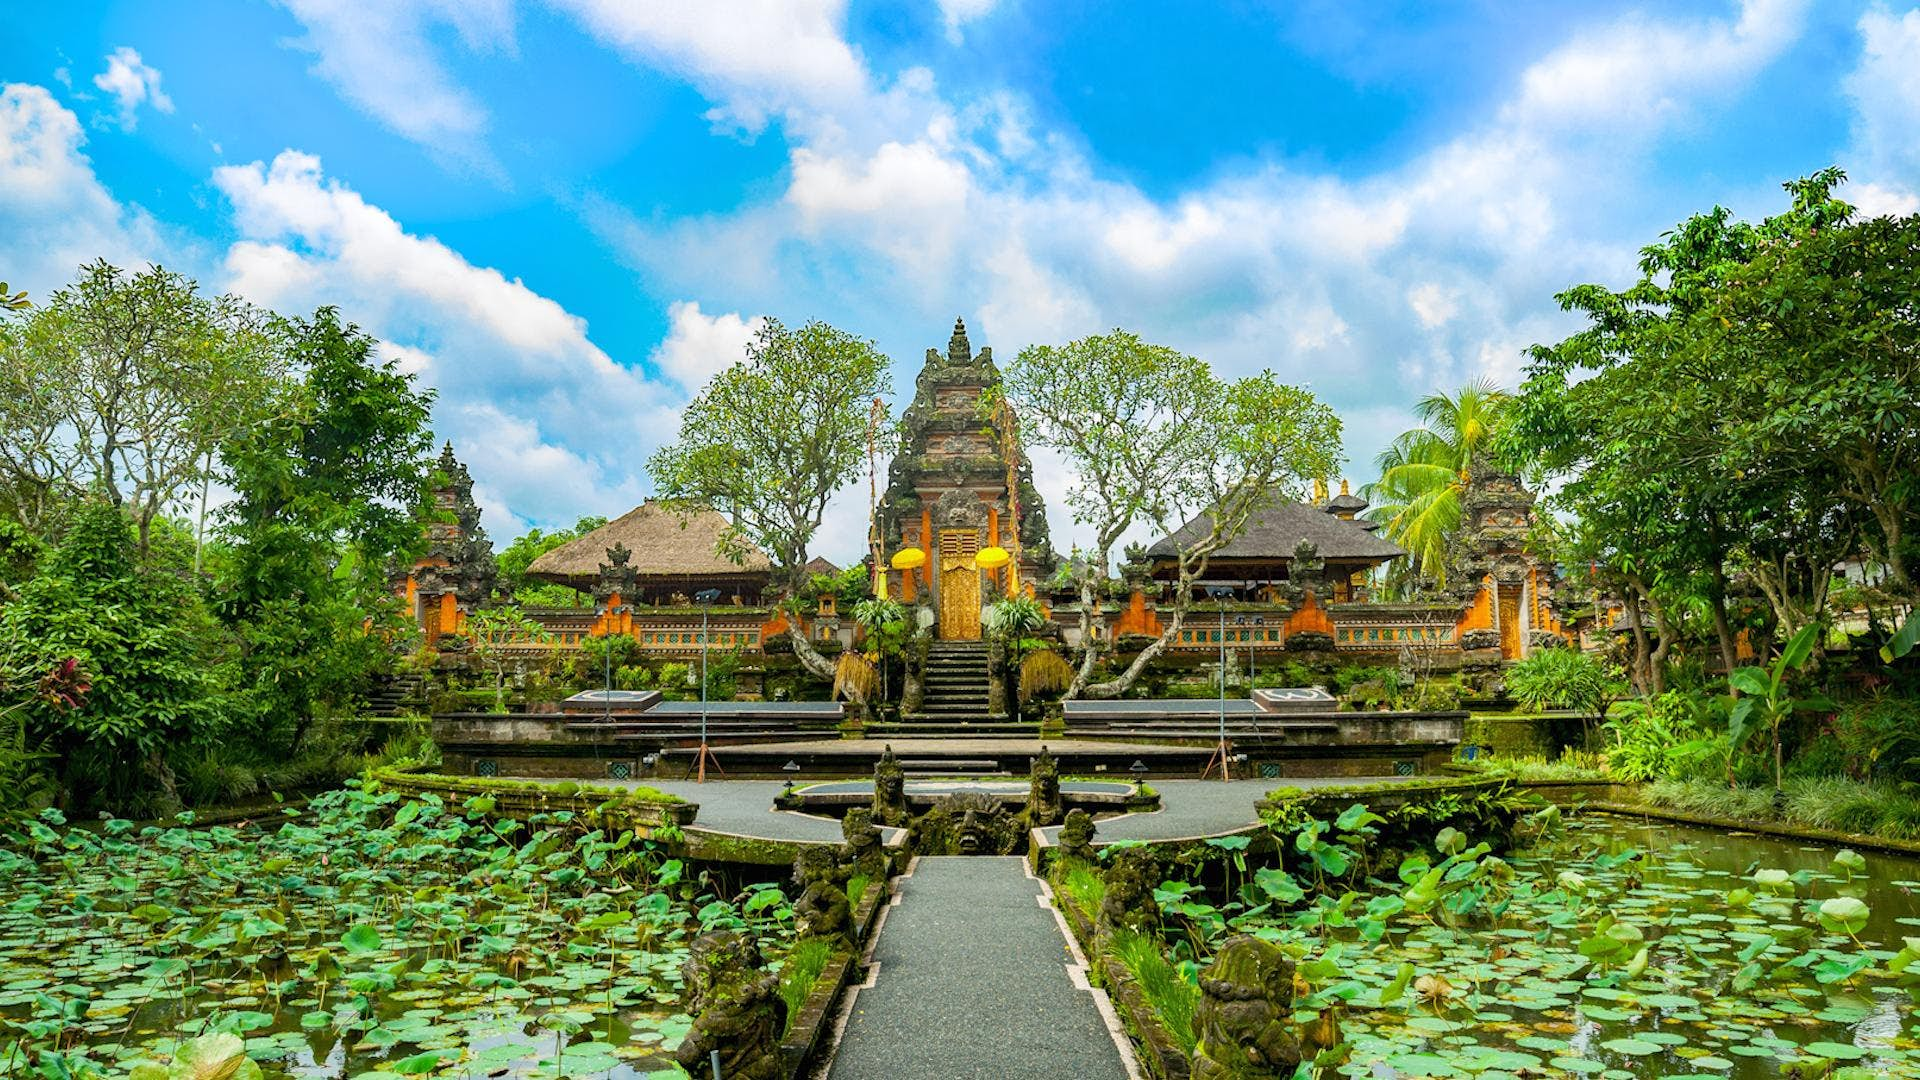 Solo travel in the spiritual heart of Bali